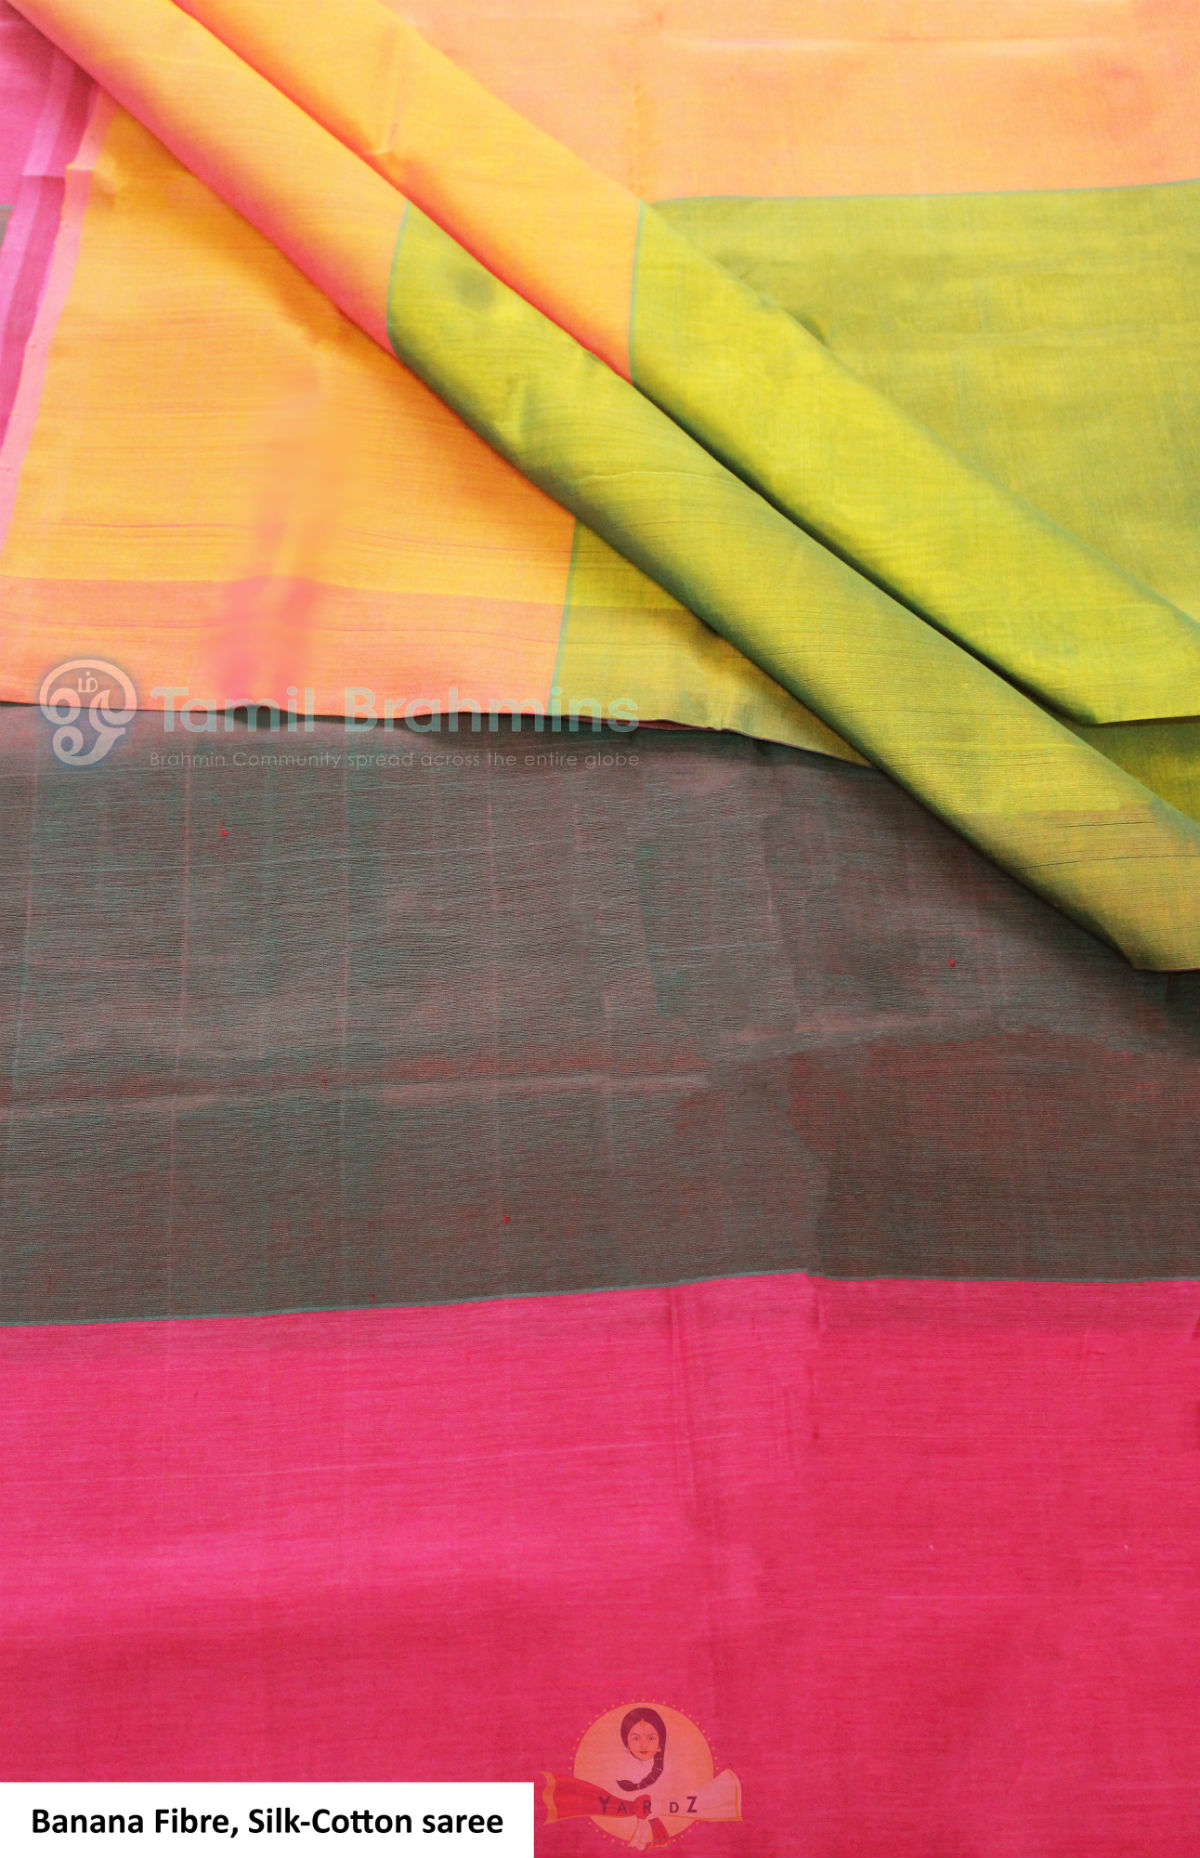 banana-fibre-saree-jpg.7061 9 Yardz - Let's go the Madisar Style